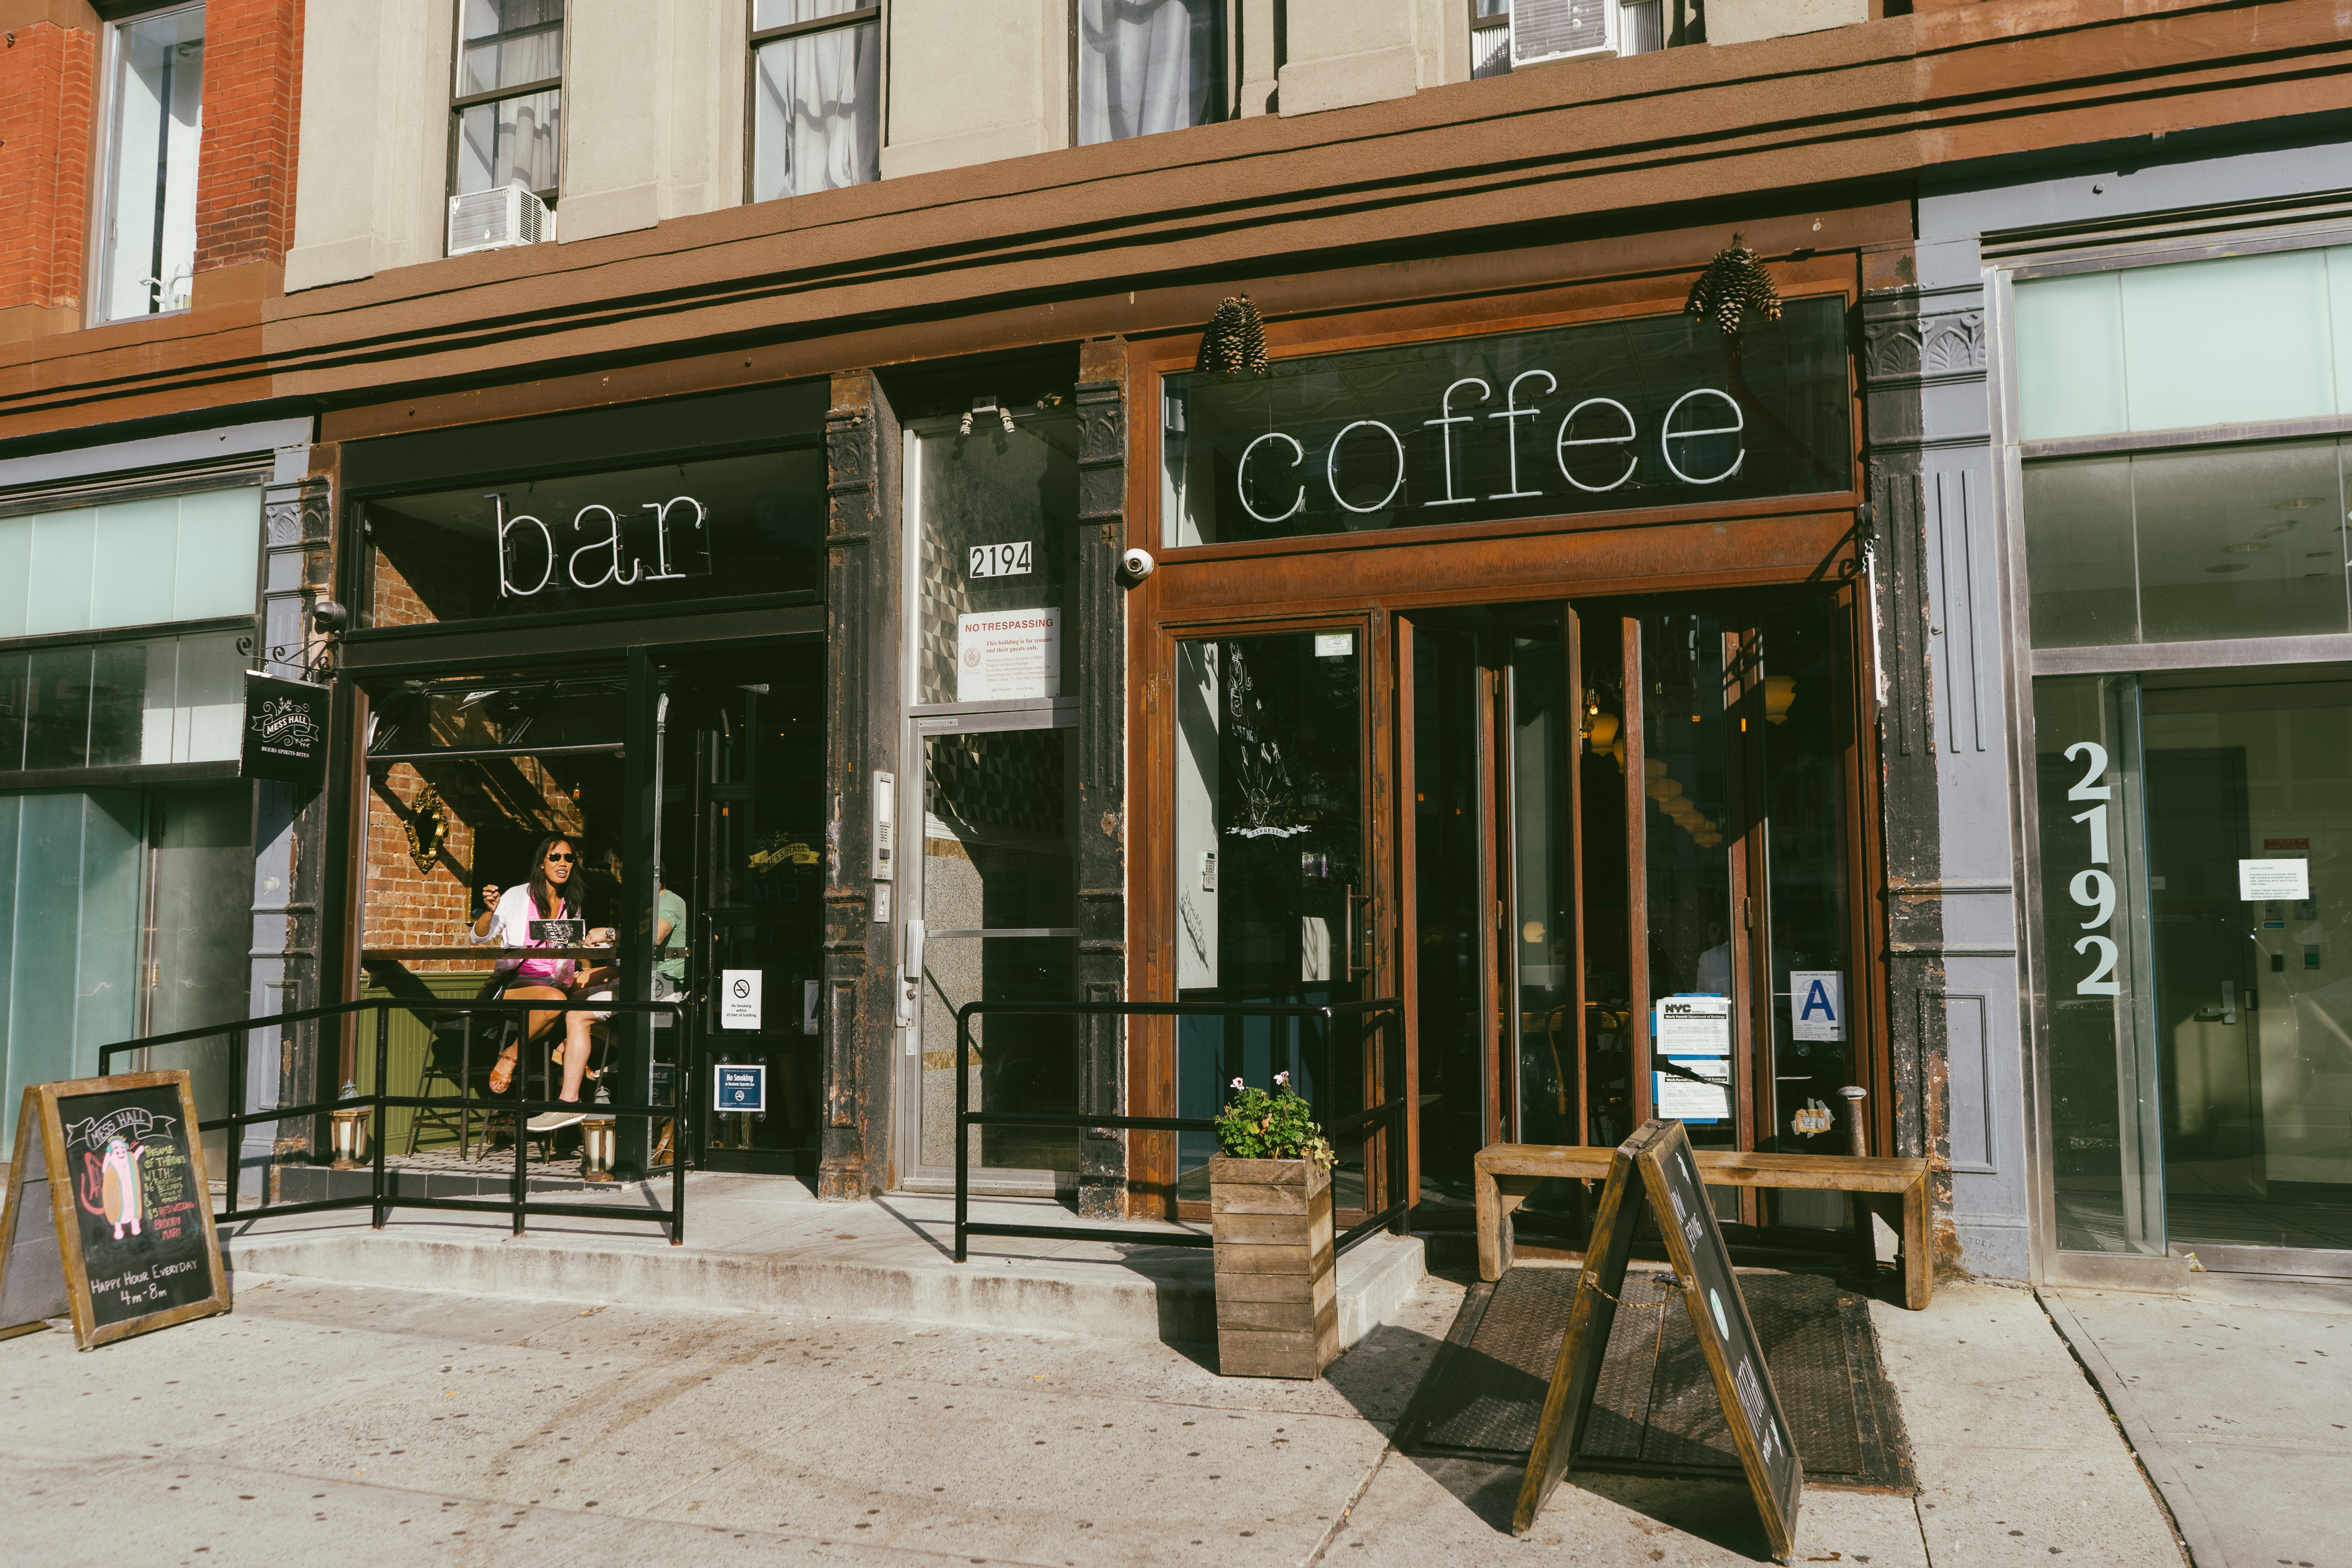 The Best Coffee Shops For Getting Work Done - New York - The Infatuation